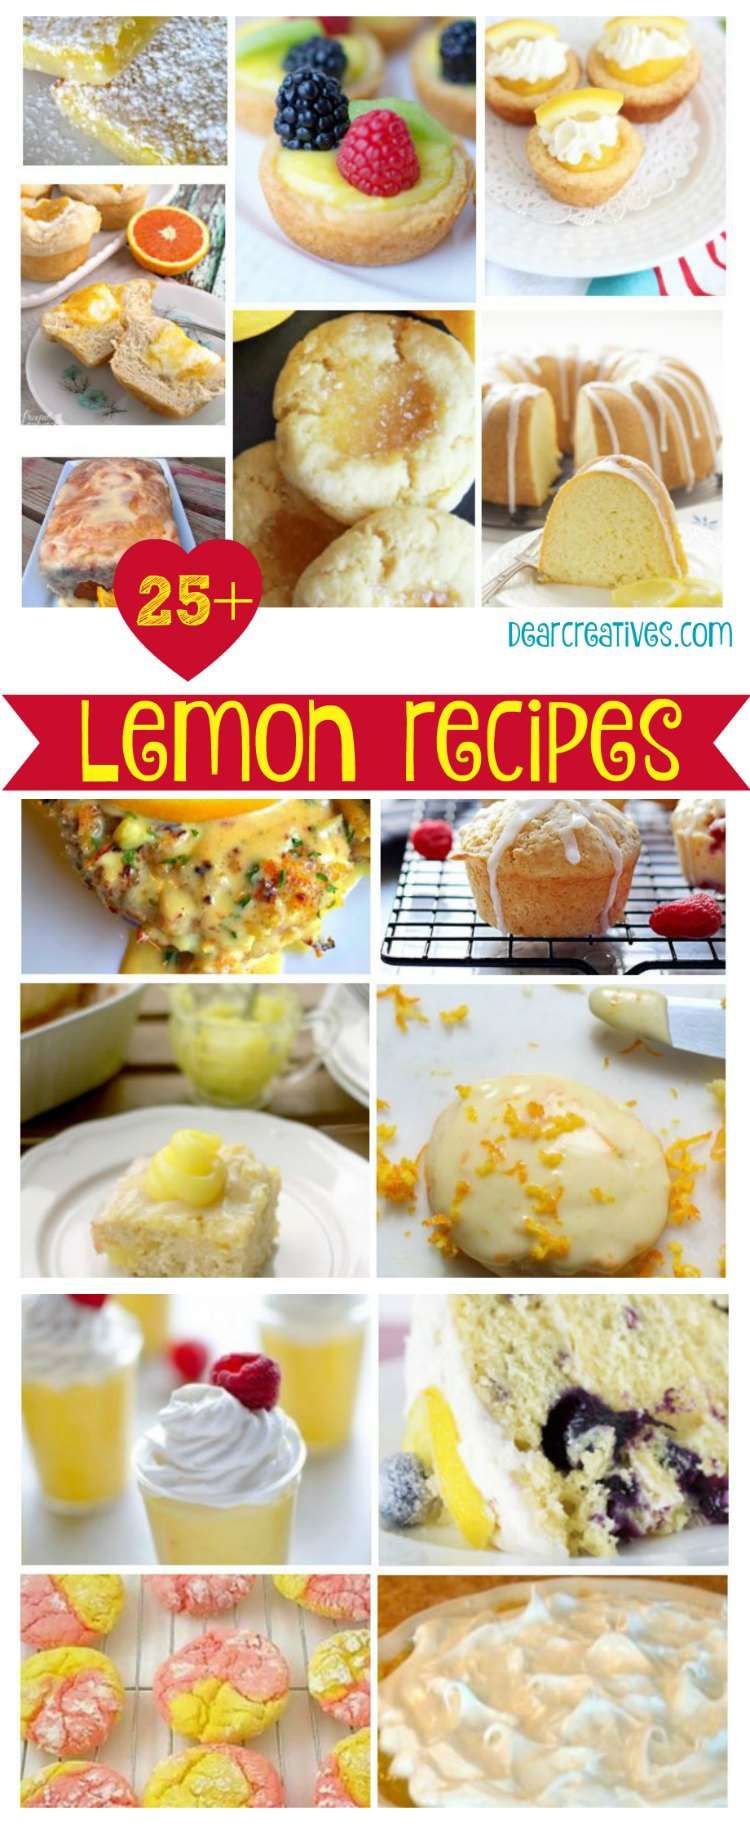 Lemon Recipes 25 plus lemon recipes for anyone who loves lemons